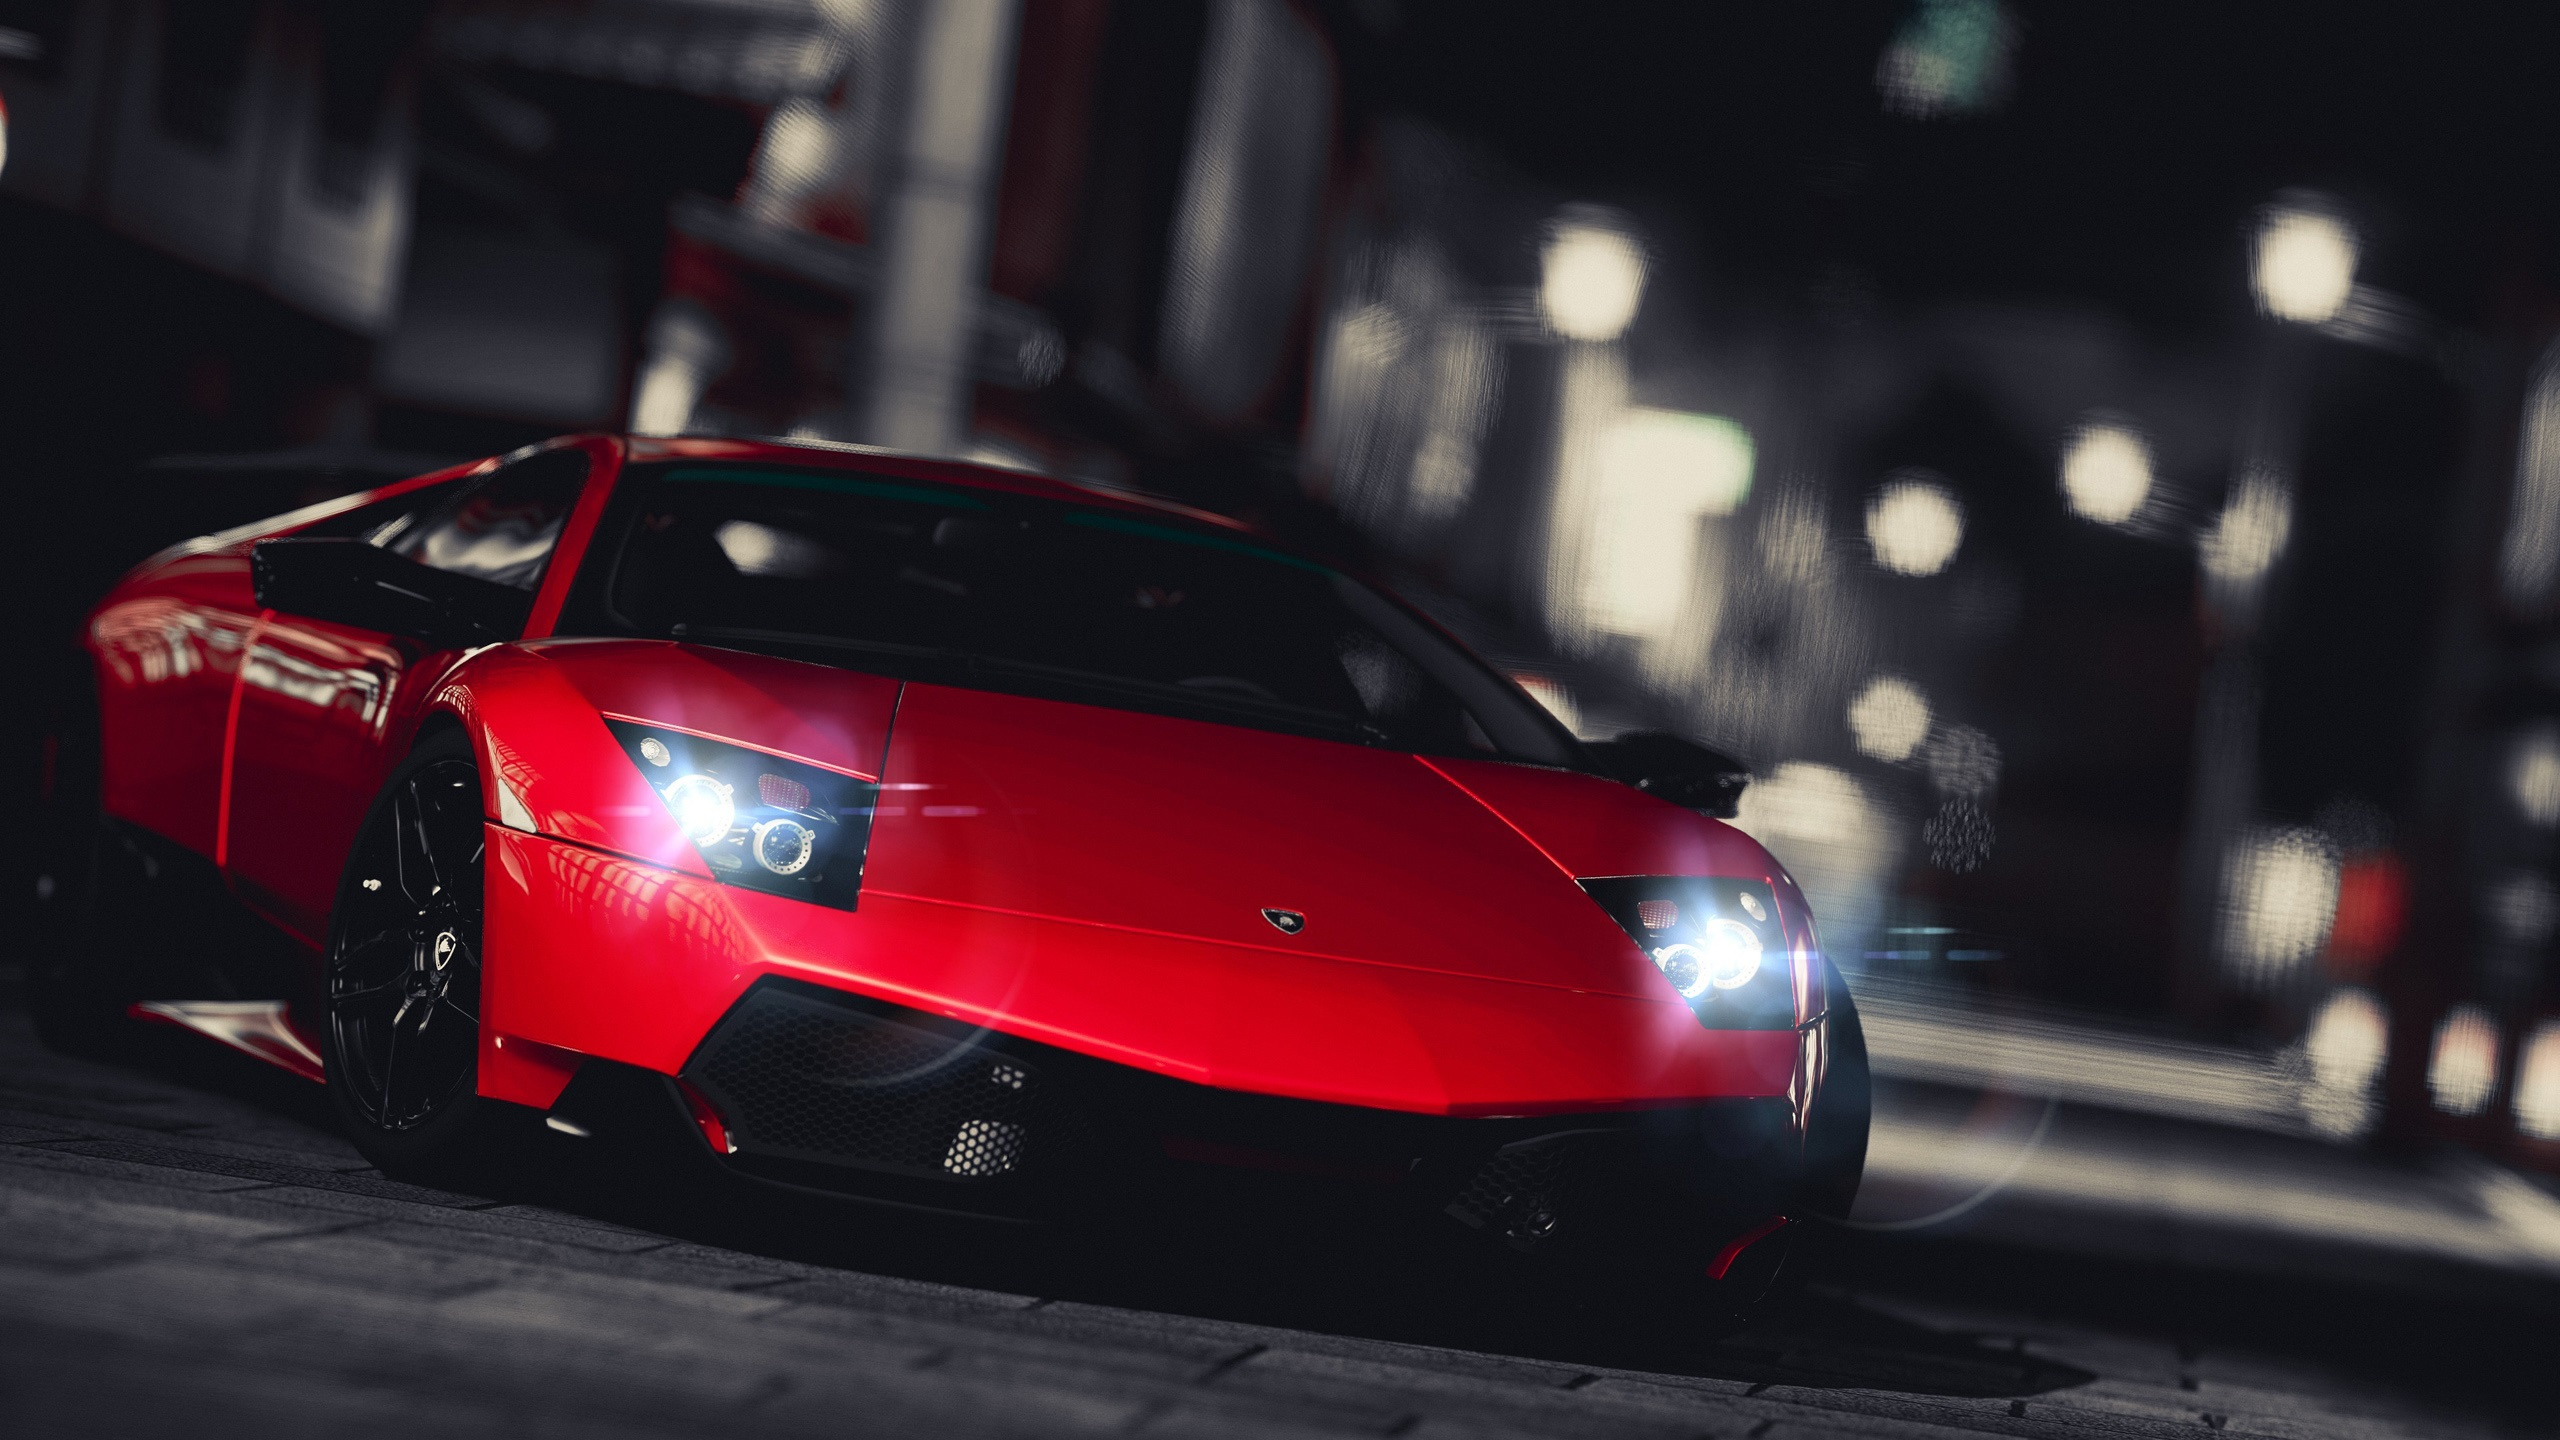 Red Lamborghini Supercar Front View City Night Wallpaper